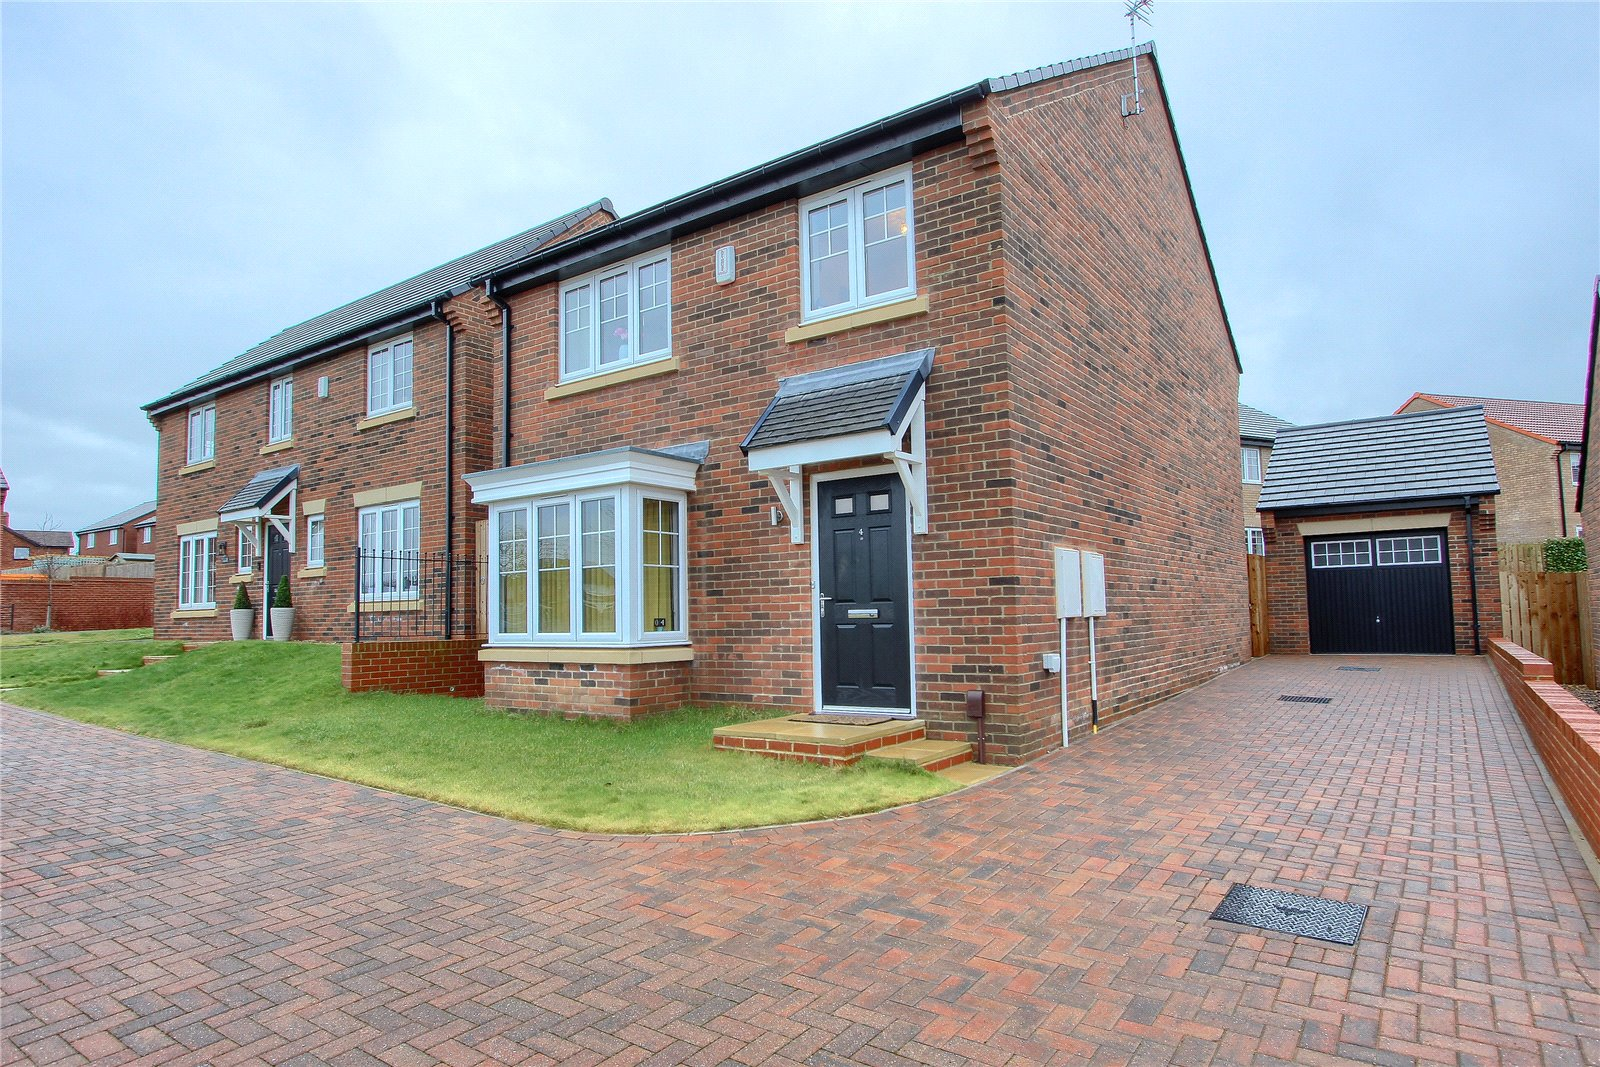 4 bed house for sale in Corngrave Road, Saltburn-by-the-Sea - Property Image 1